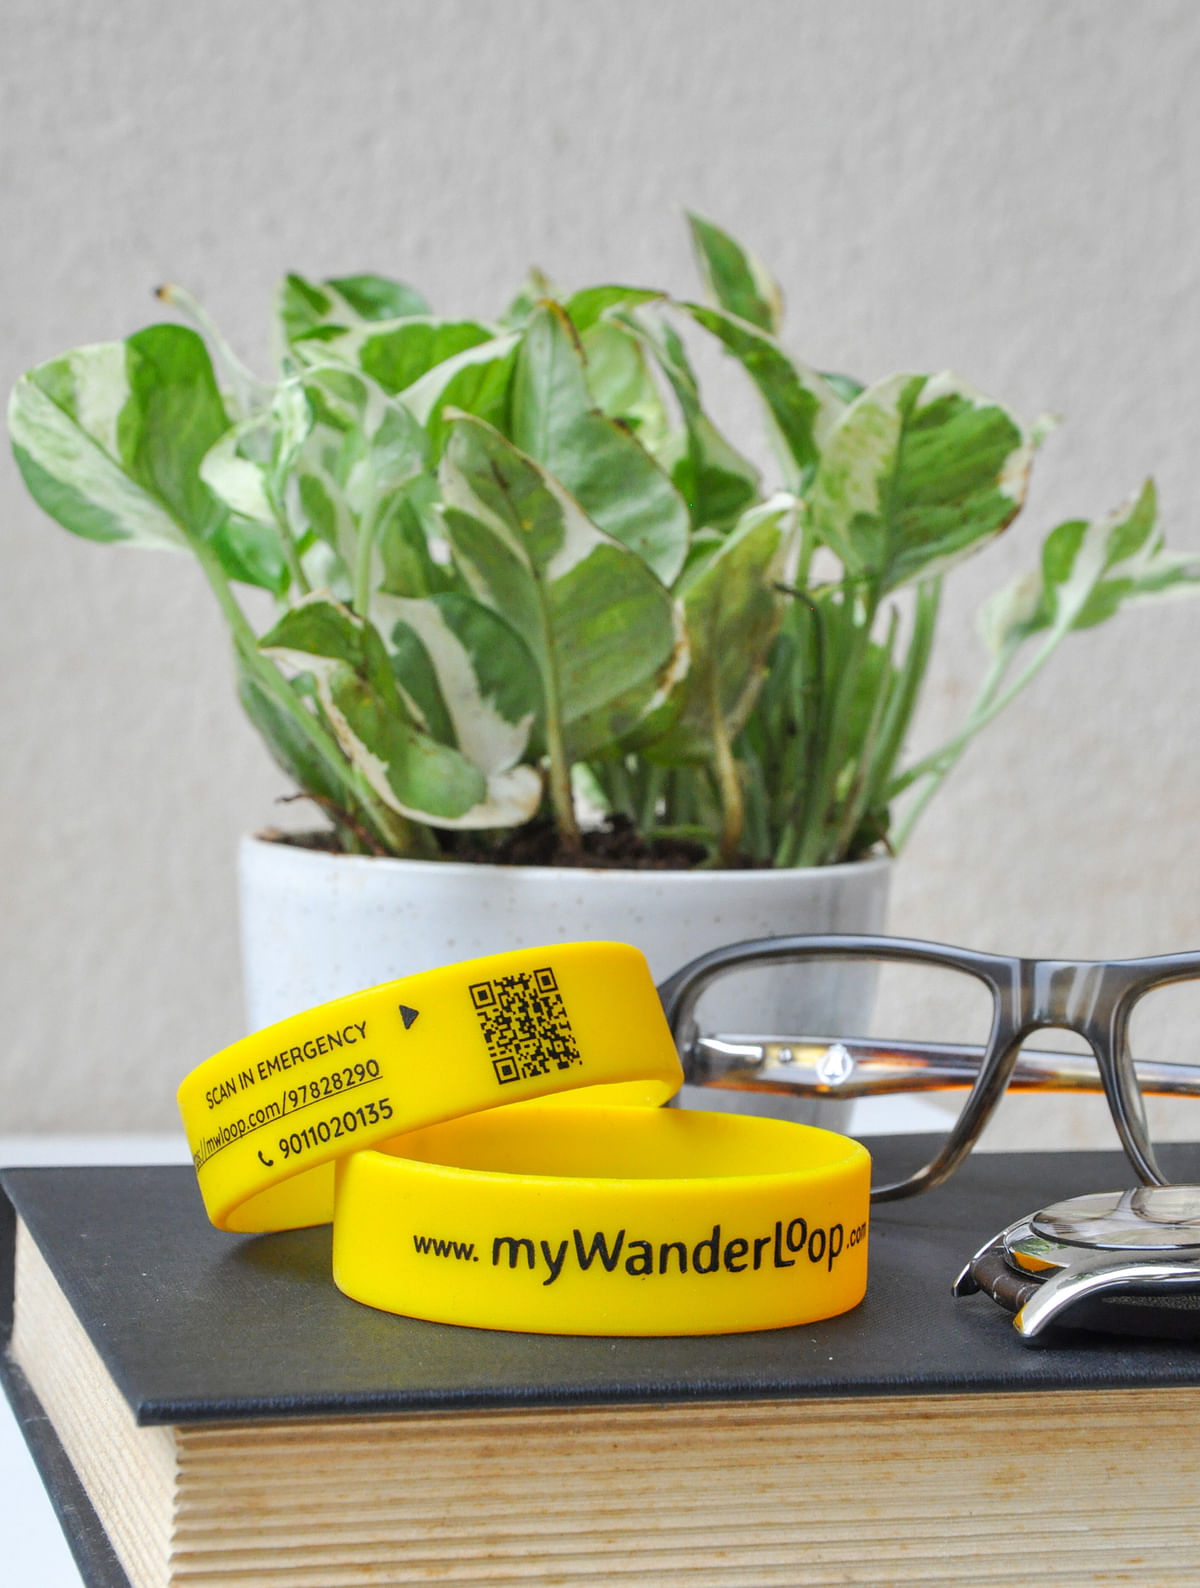 myWanderLoop wristband is an effective and viable alternative to other tracking devices